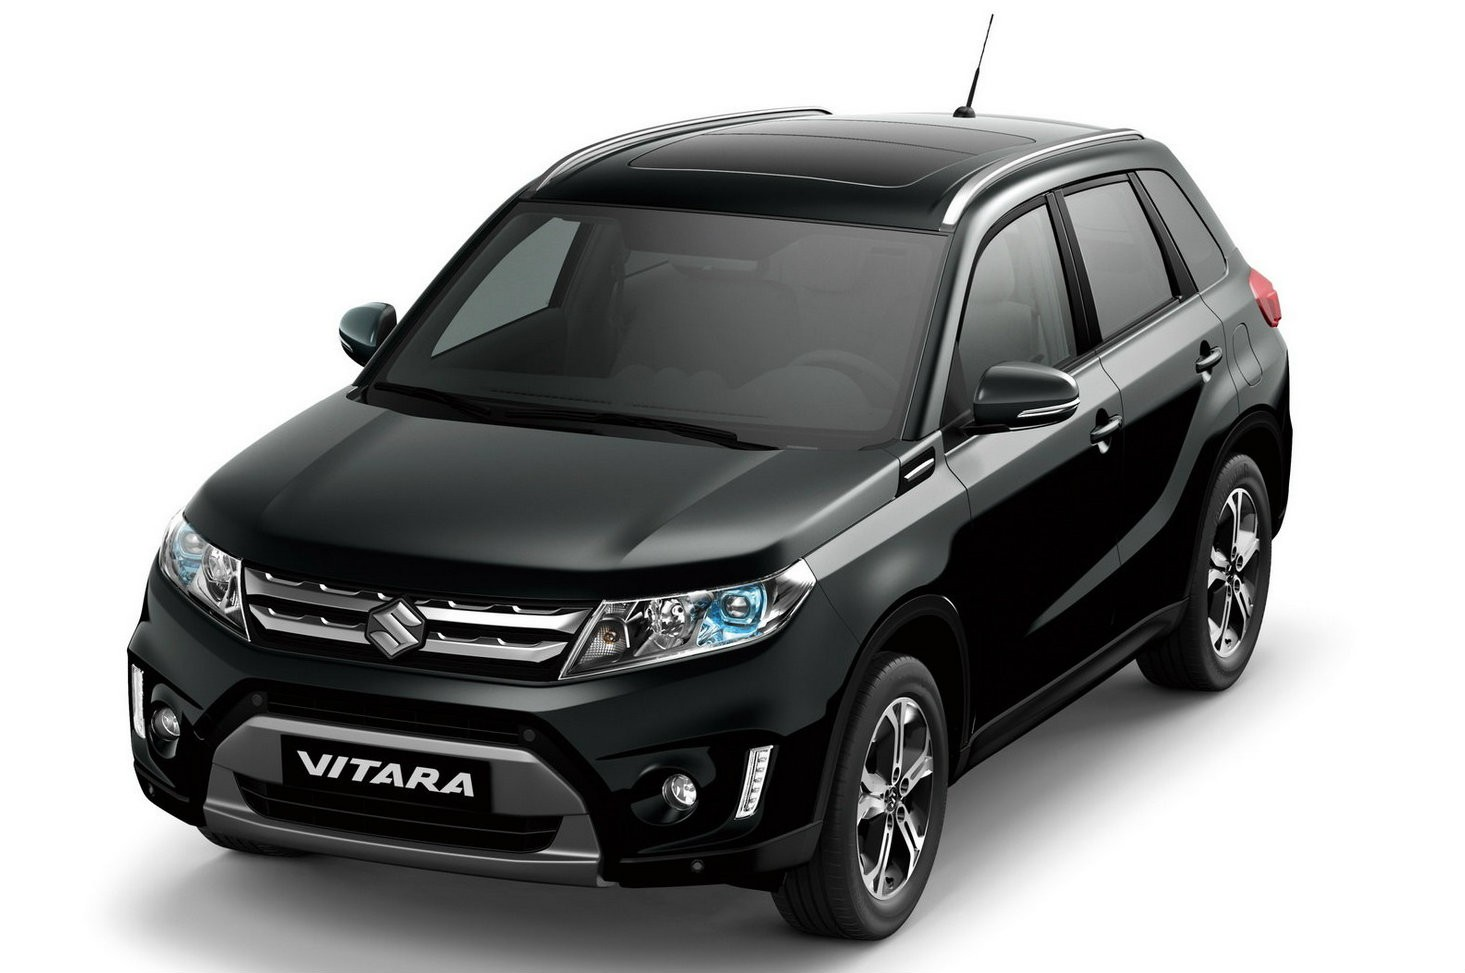 2015 suzuki vitara web black edition arriving in europe next year in march autoevolution. Black Bedroom Furniture Sets. Home Design Ideas